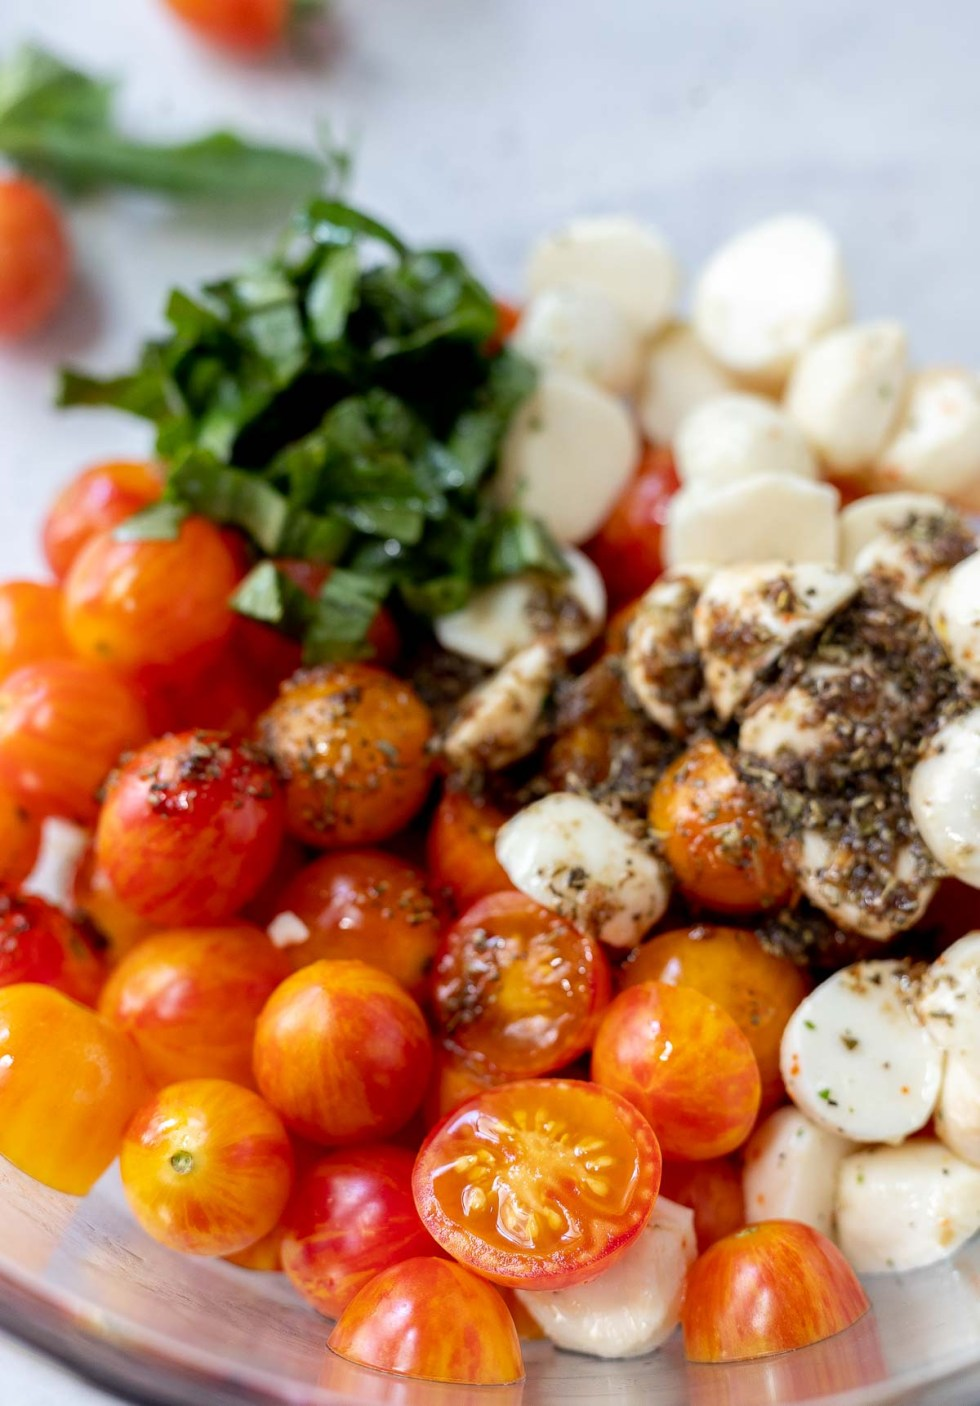 caprese salad ingredients including dressing in clear glass bowl